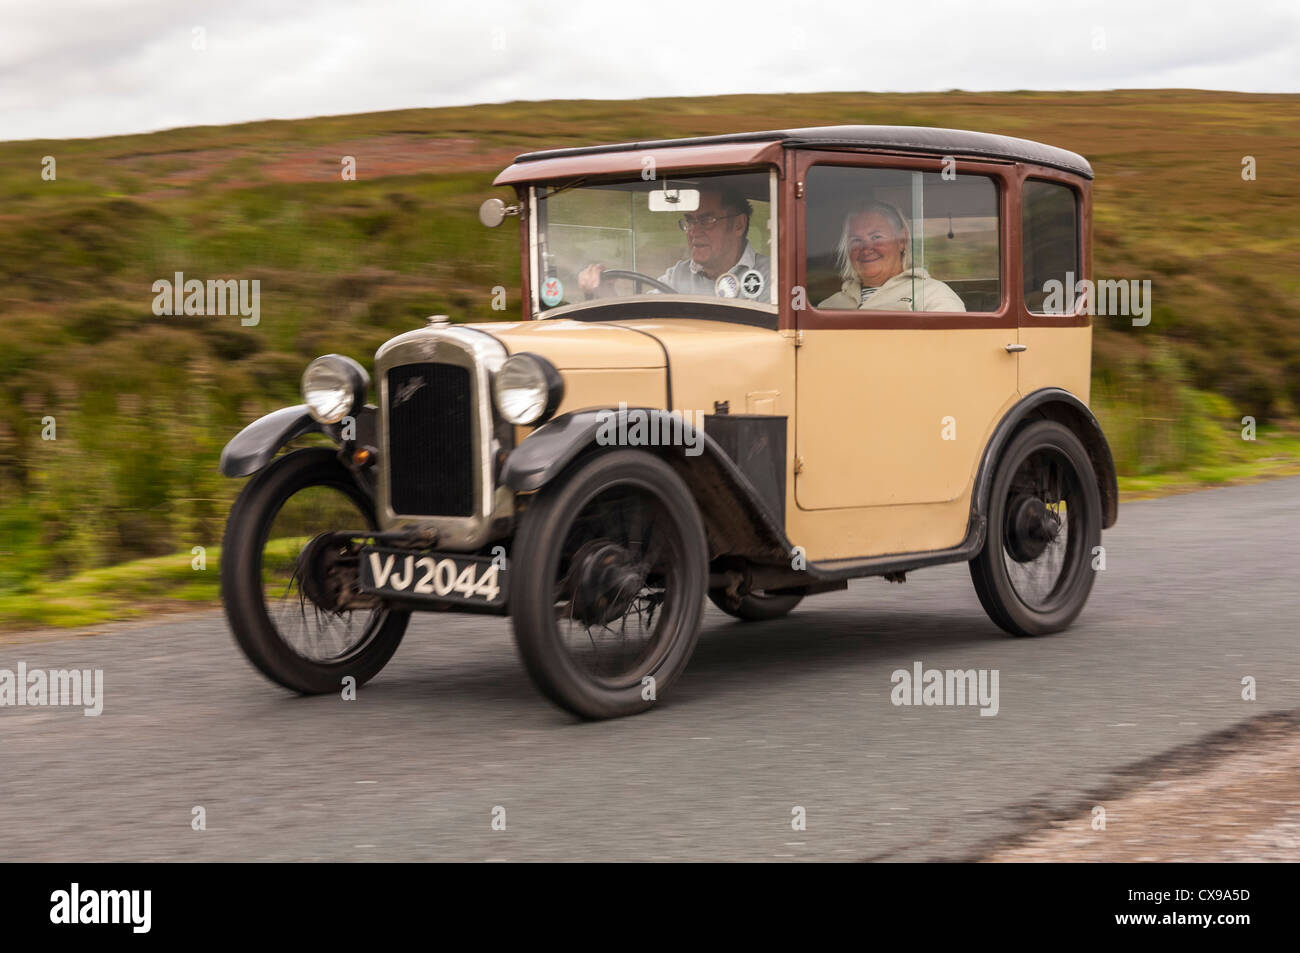 Baby Austin Vintage Car High Resolution Stock Photography And Images Alamy